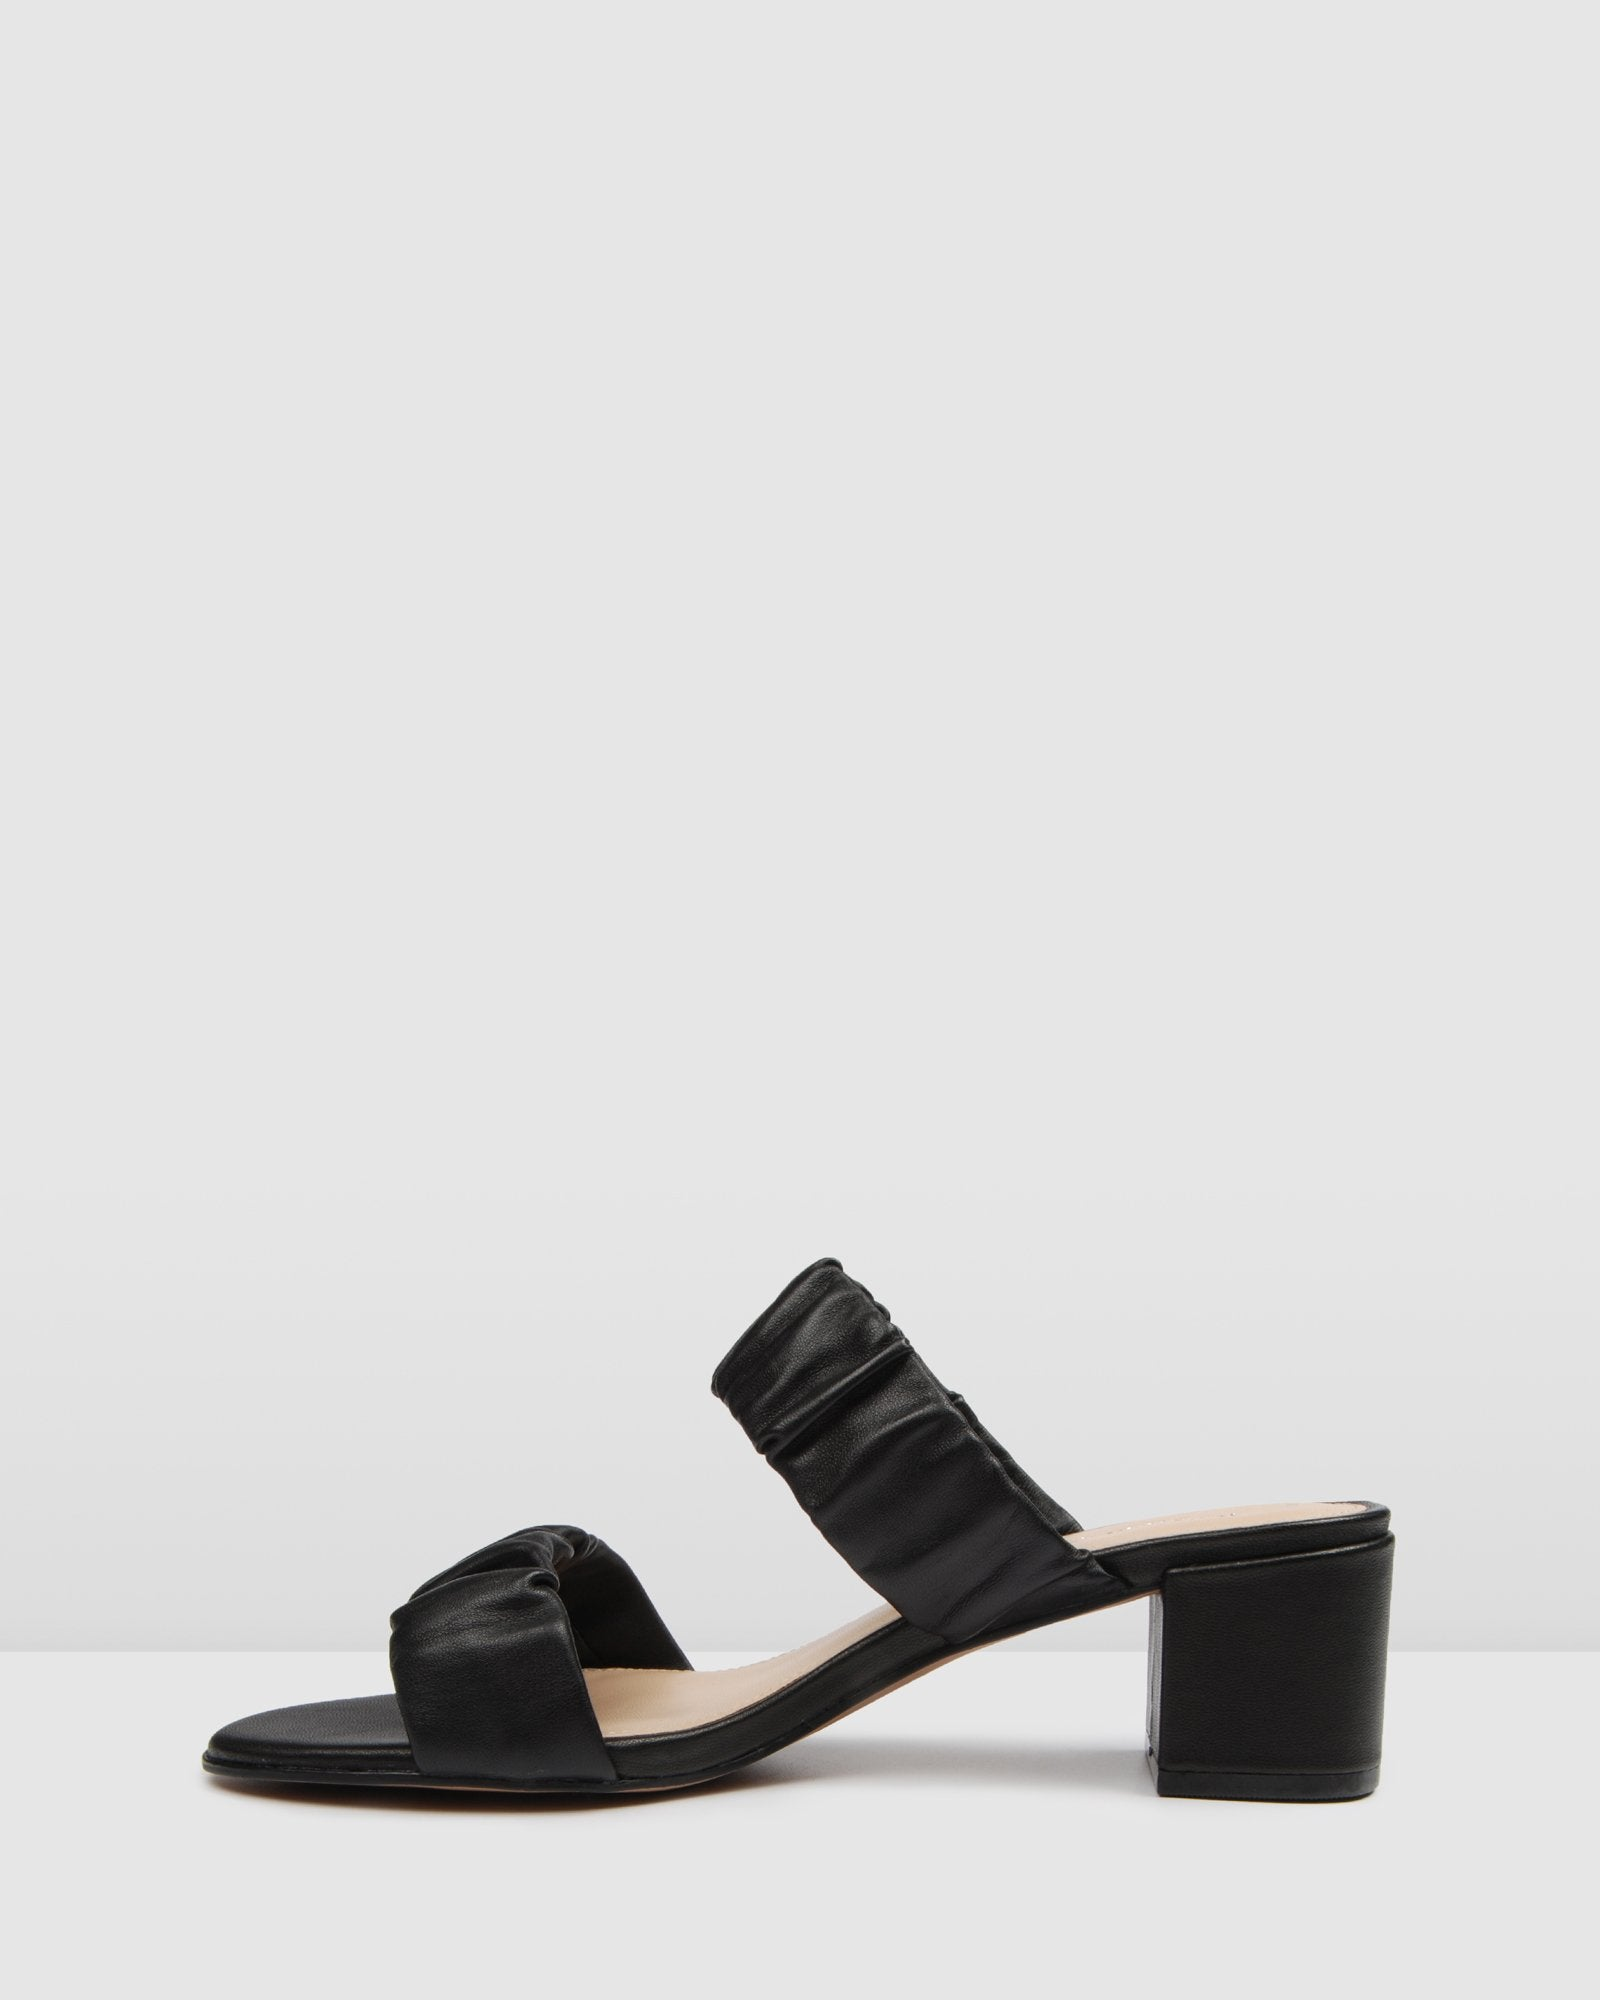 RIPLEY LOW HEEL MULES BLACK LEATHER